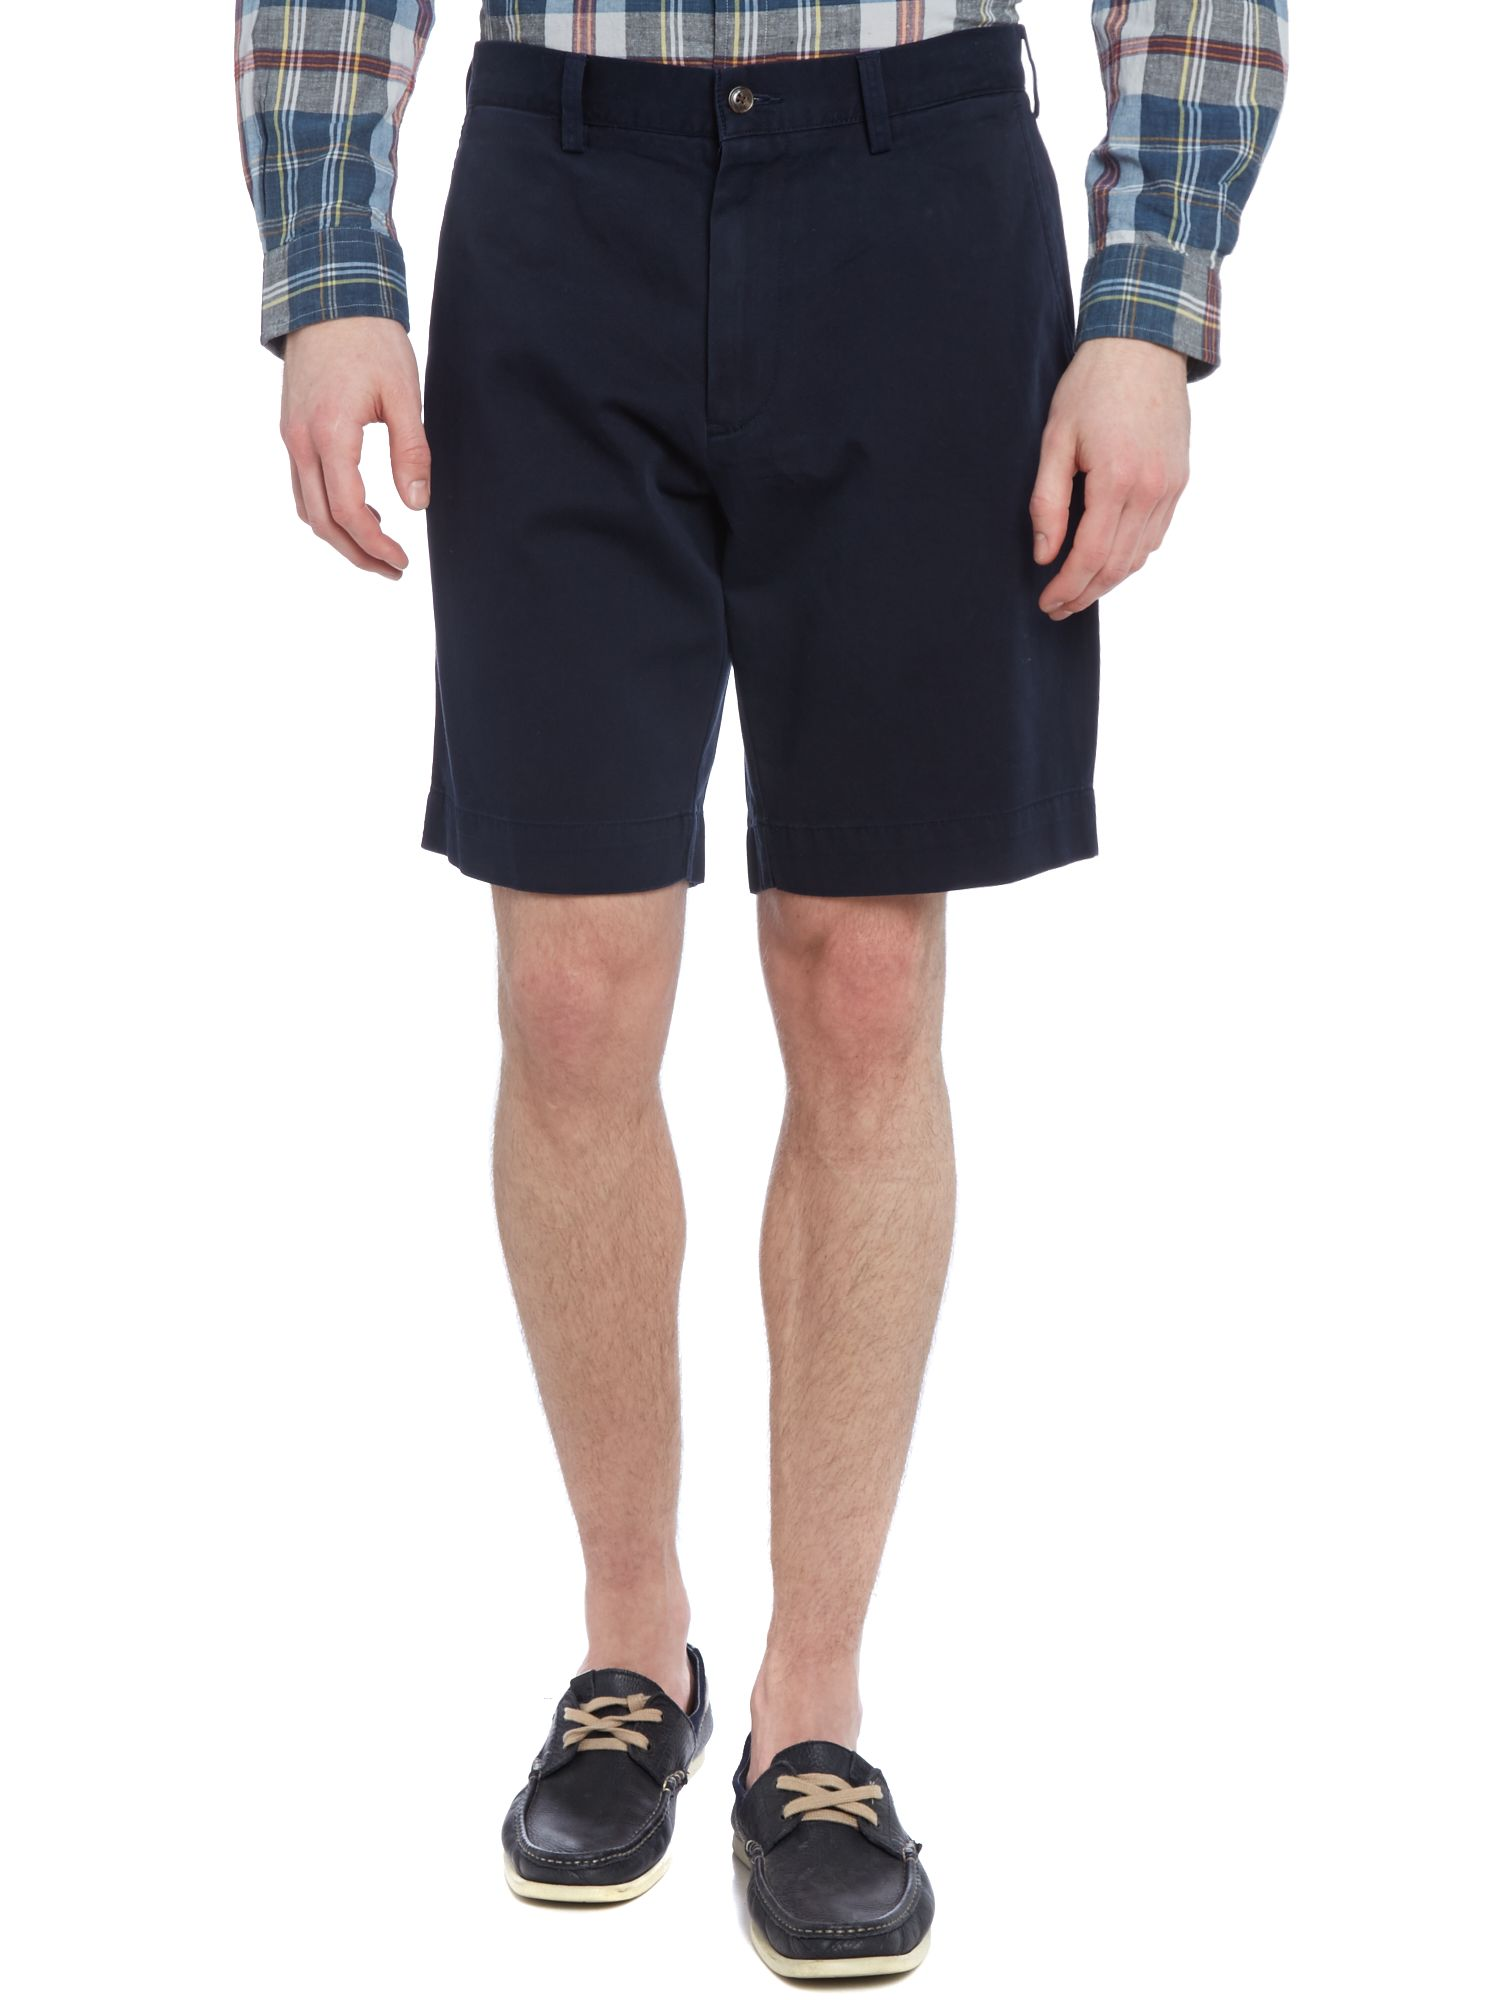 Suffield chino shorts